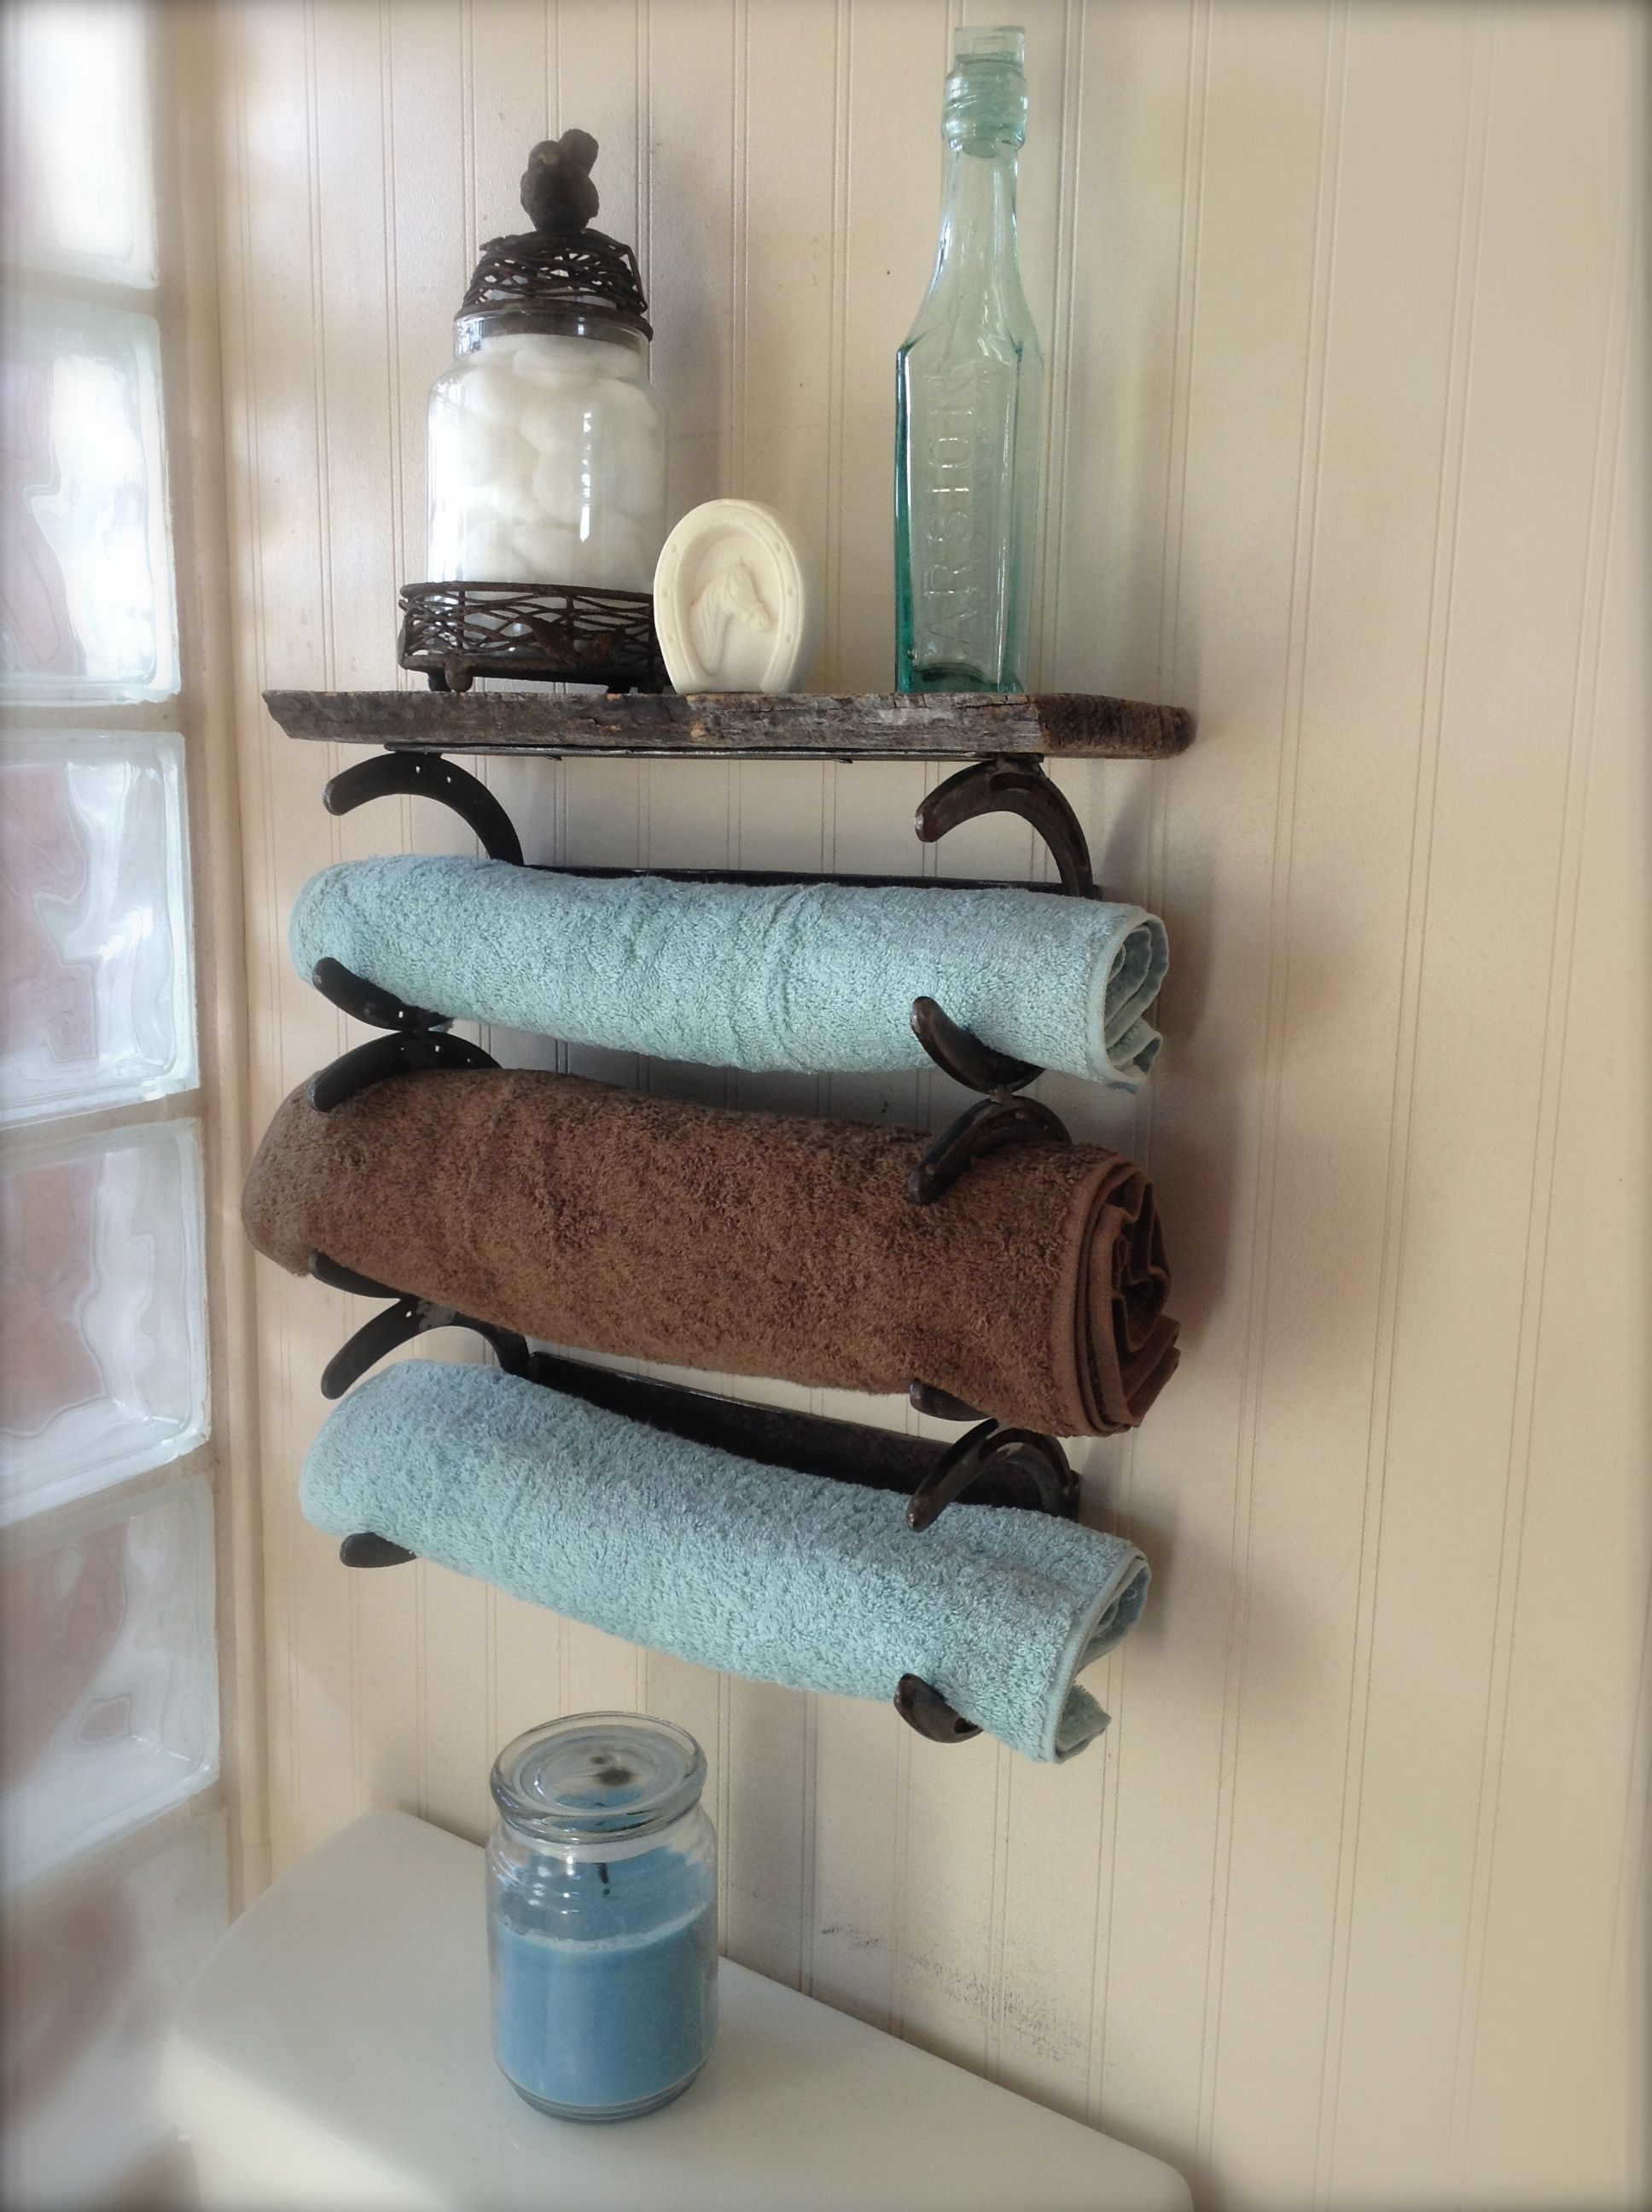 horseshoe towel holder wc pinteres newest addition to our custom bath line horseshoe towel rack with shelf 89 99